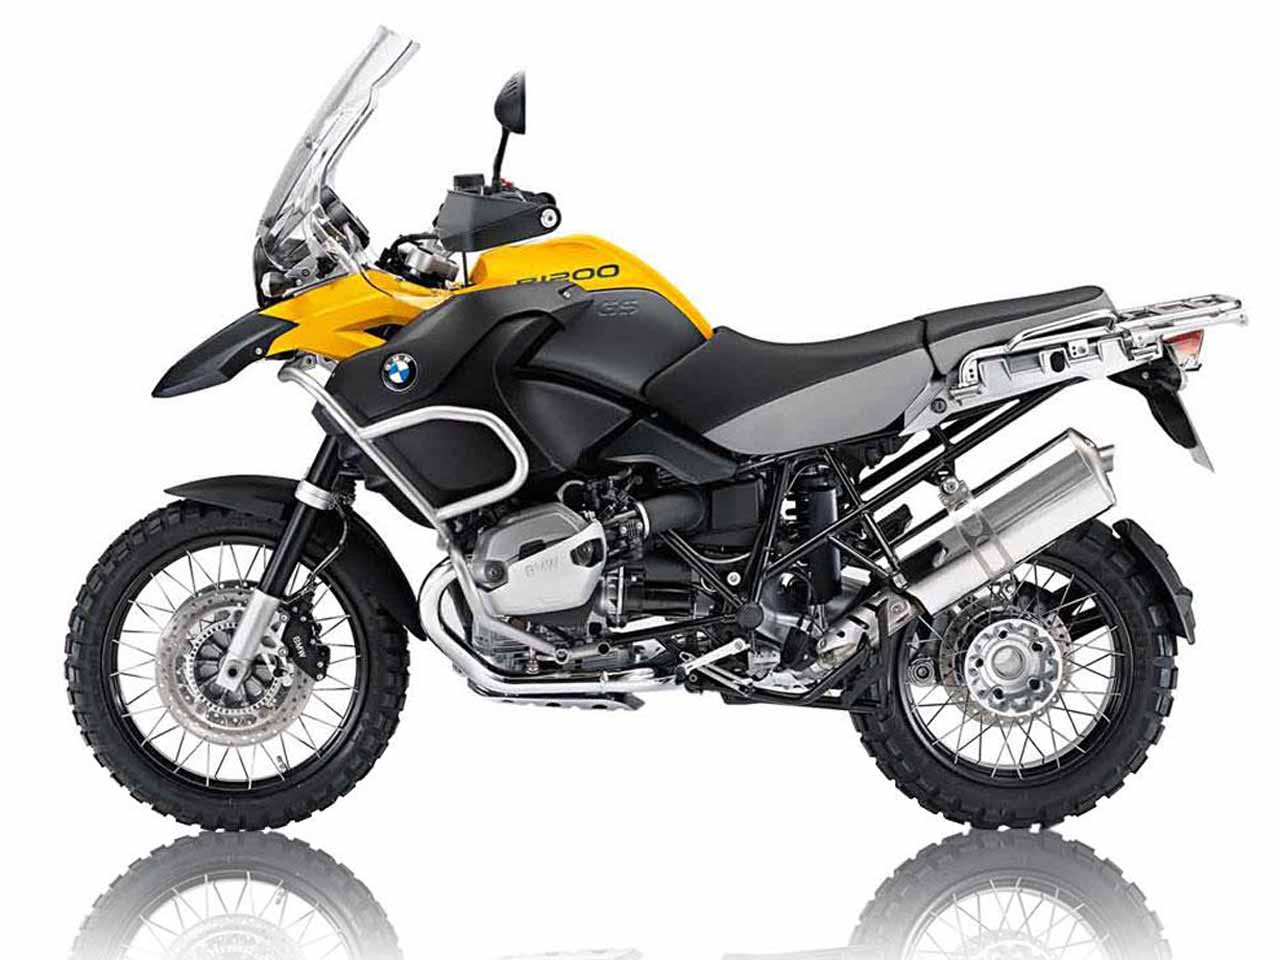 2012 bmw r 1200 gs adventure specifications identification model type ...